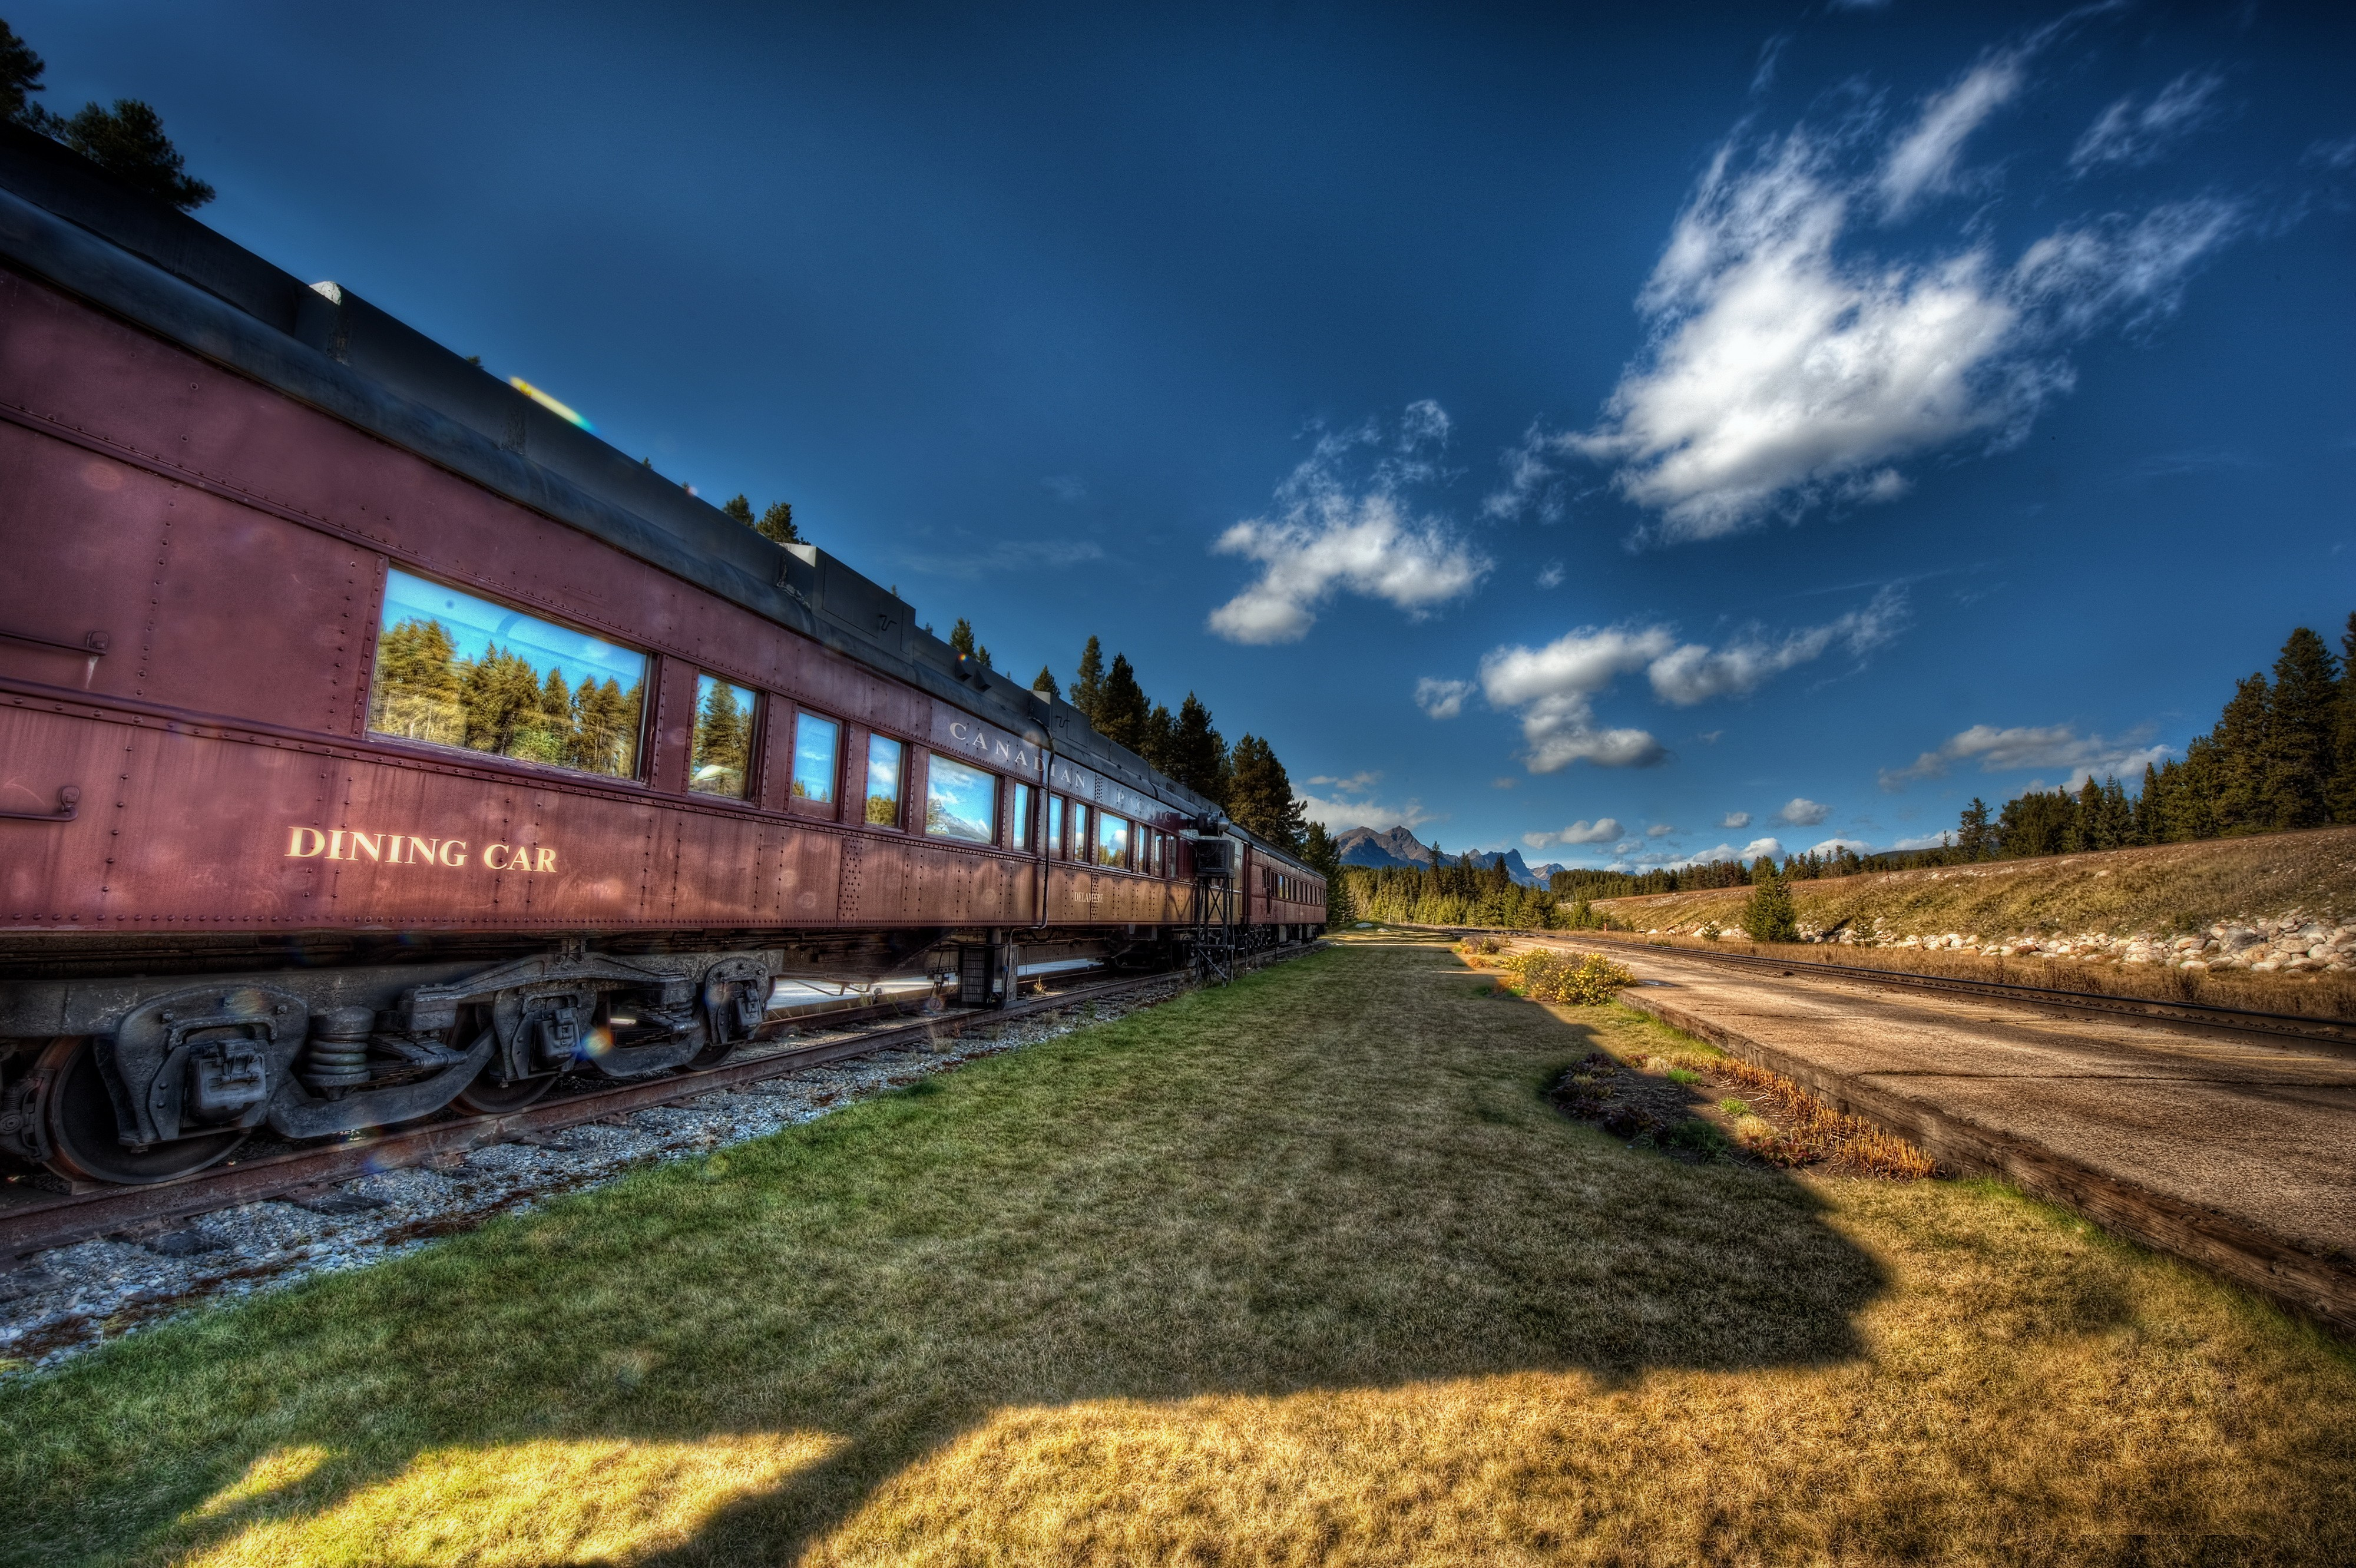 best photography wallpapers,nature,sky,transport,track,cloud